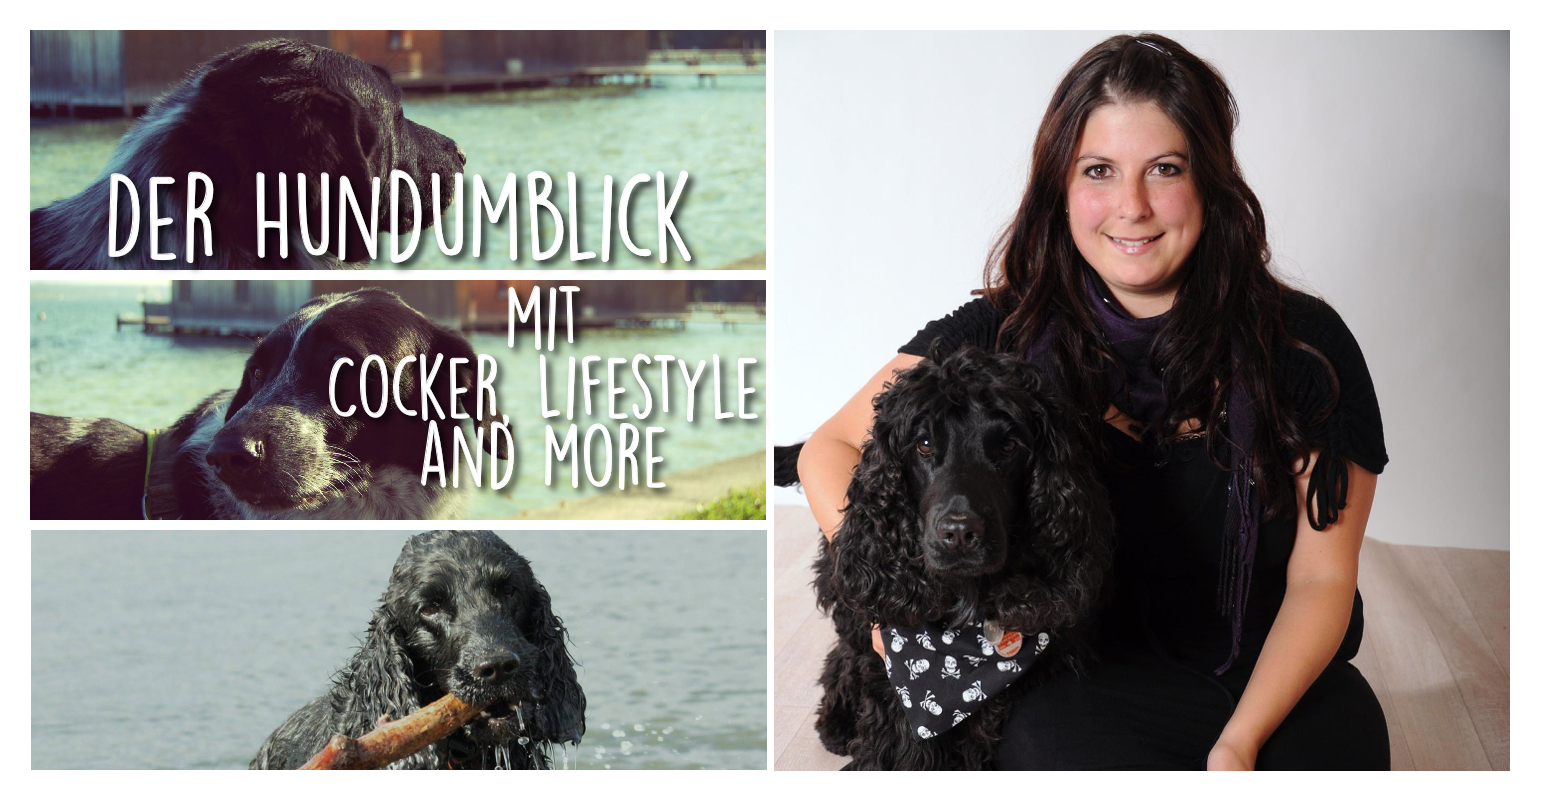 Der Hundumblick: 6 Fragen an Steffi von Cocker, Lifestyle and more